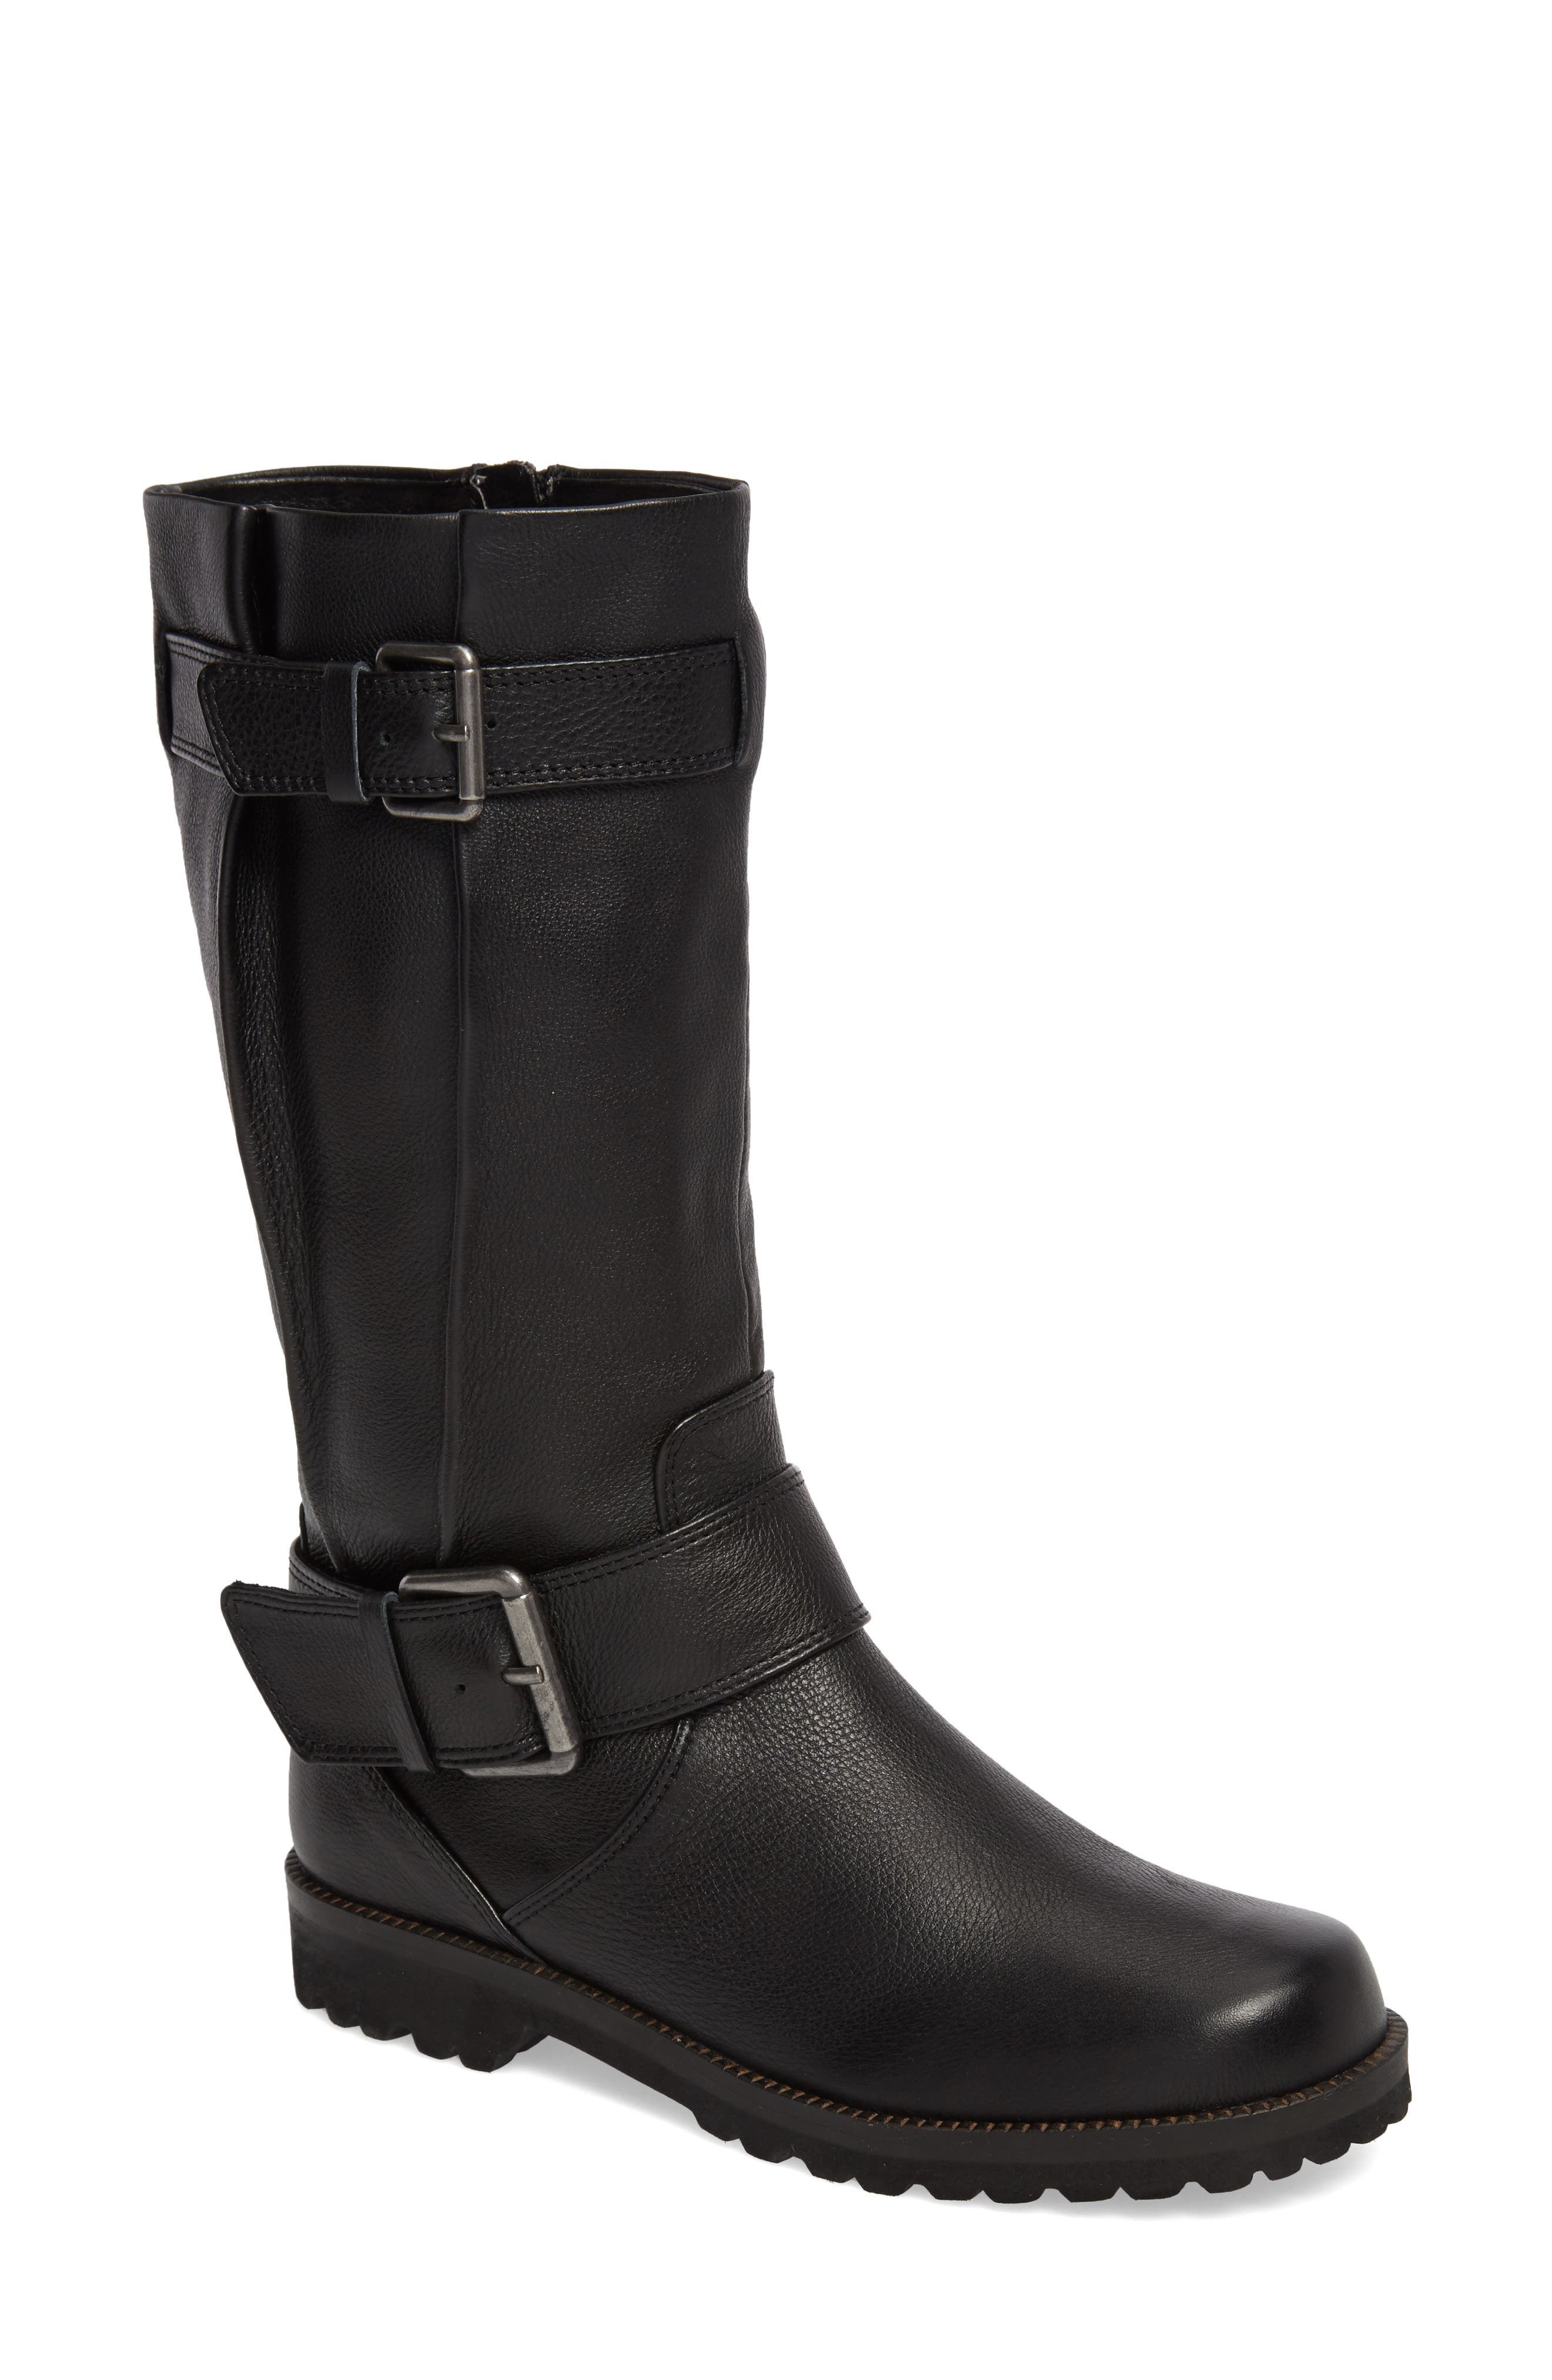 GENTLE SOULS BY KENNETH COLE, 'Buckled Up' Boot, Main thumbnail 1, color, BLACK